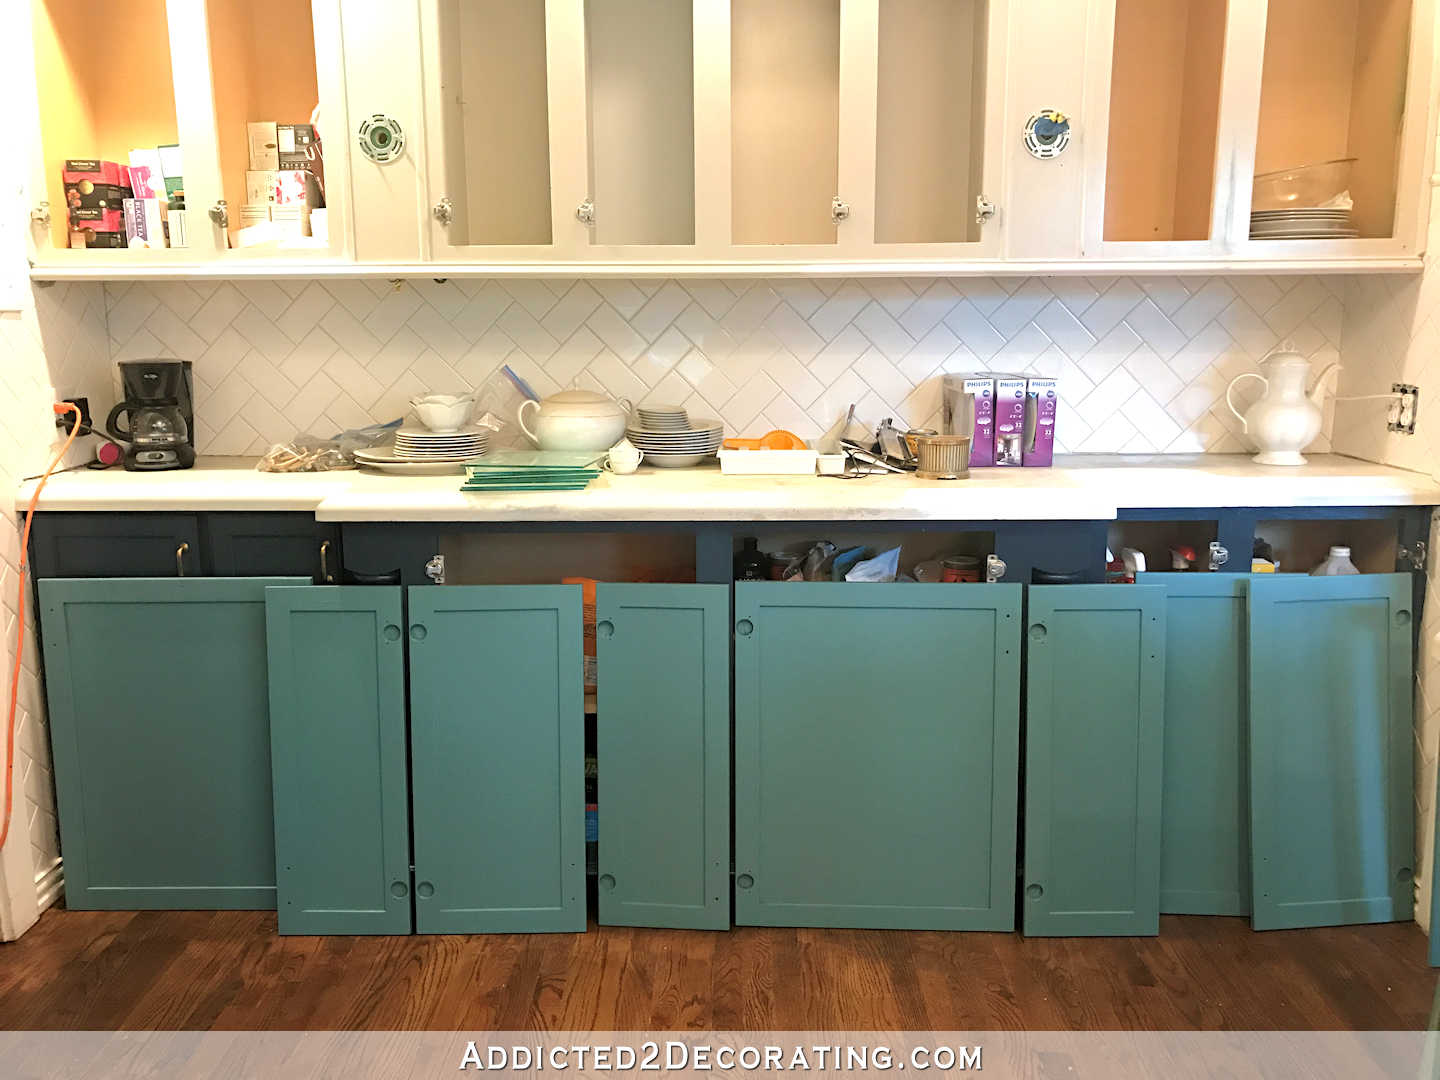 sneak peek teal paint color for kitchen cabinets backs of cabinet doors painted